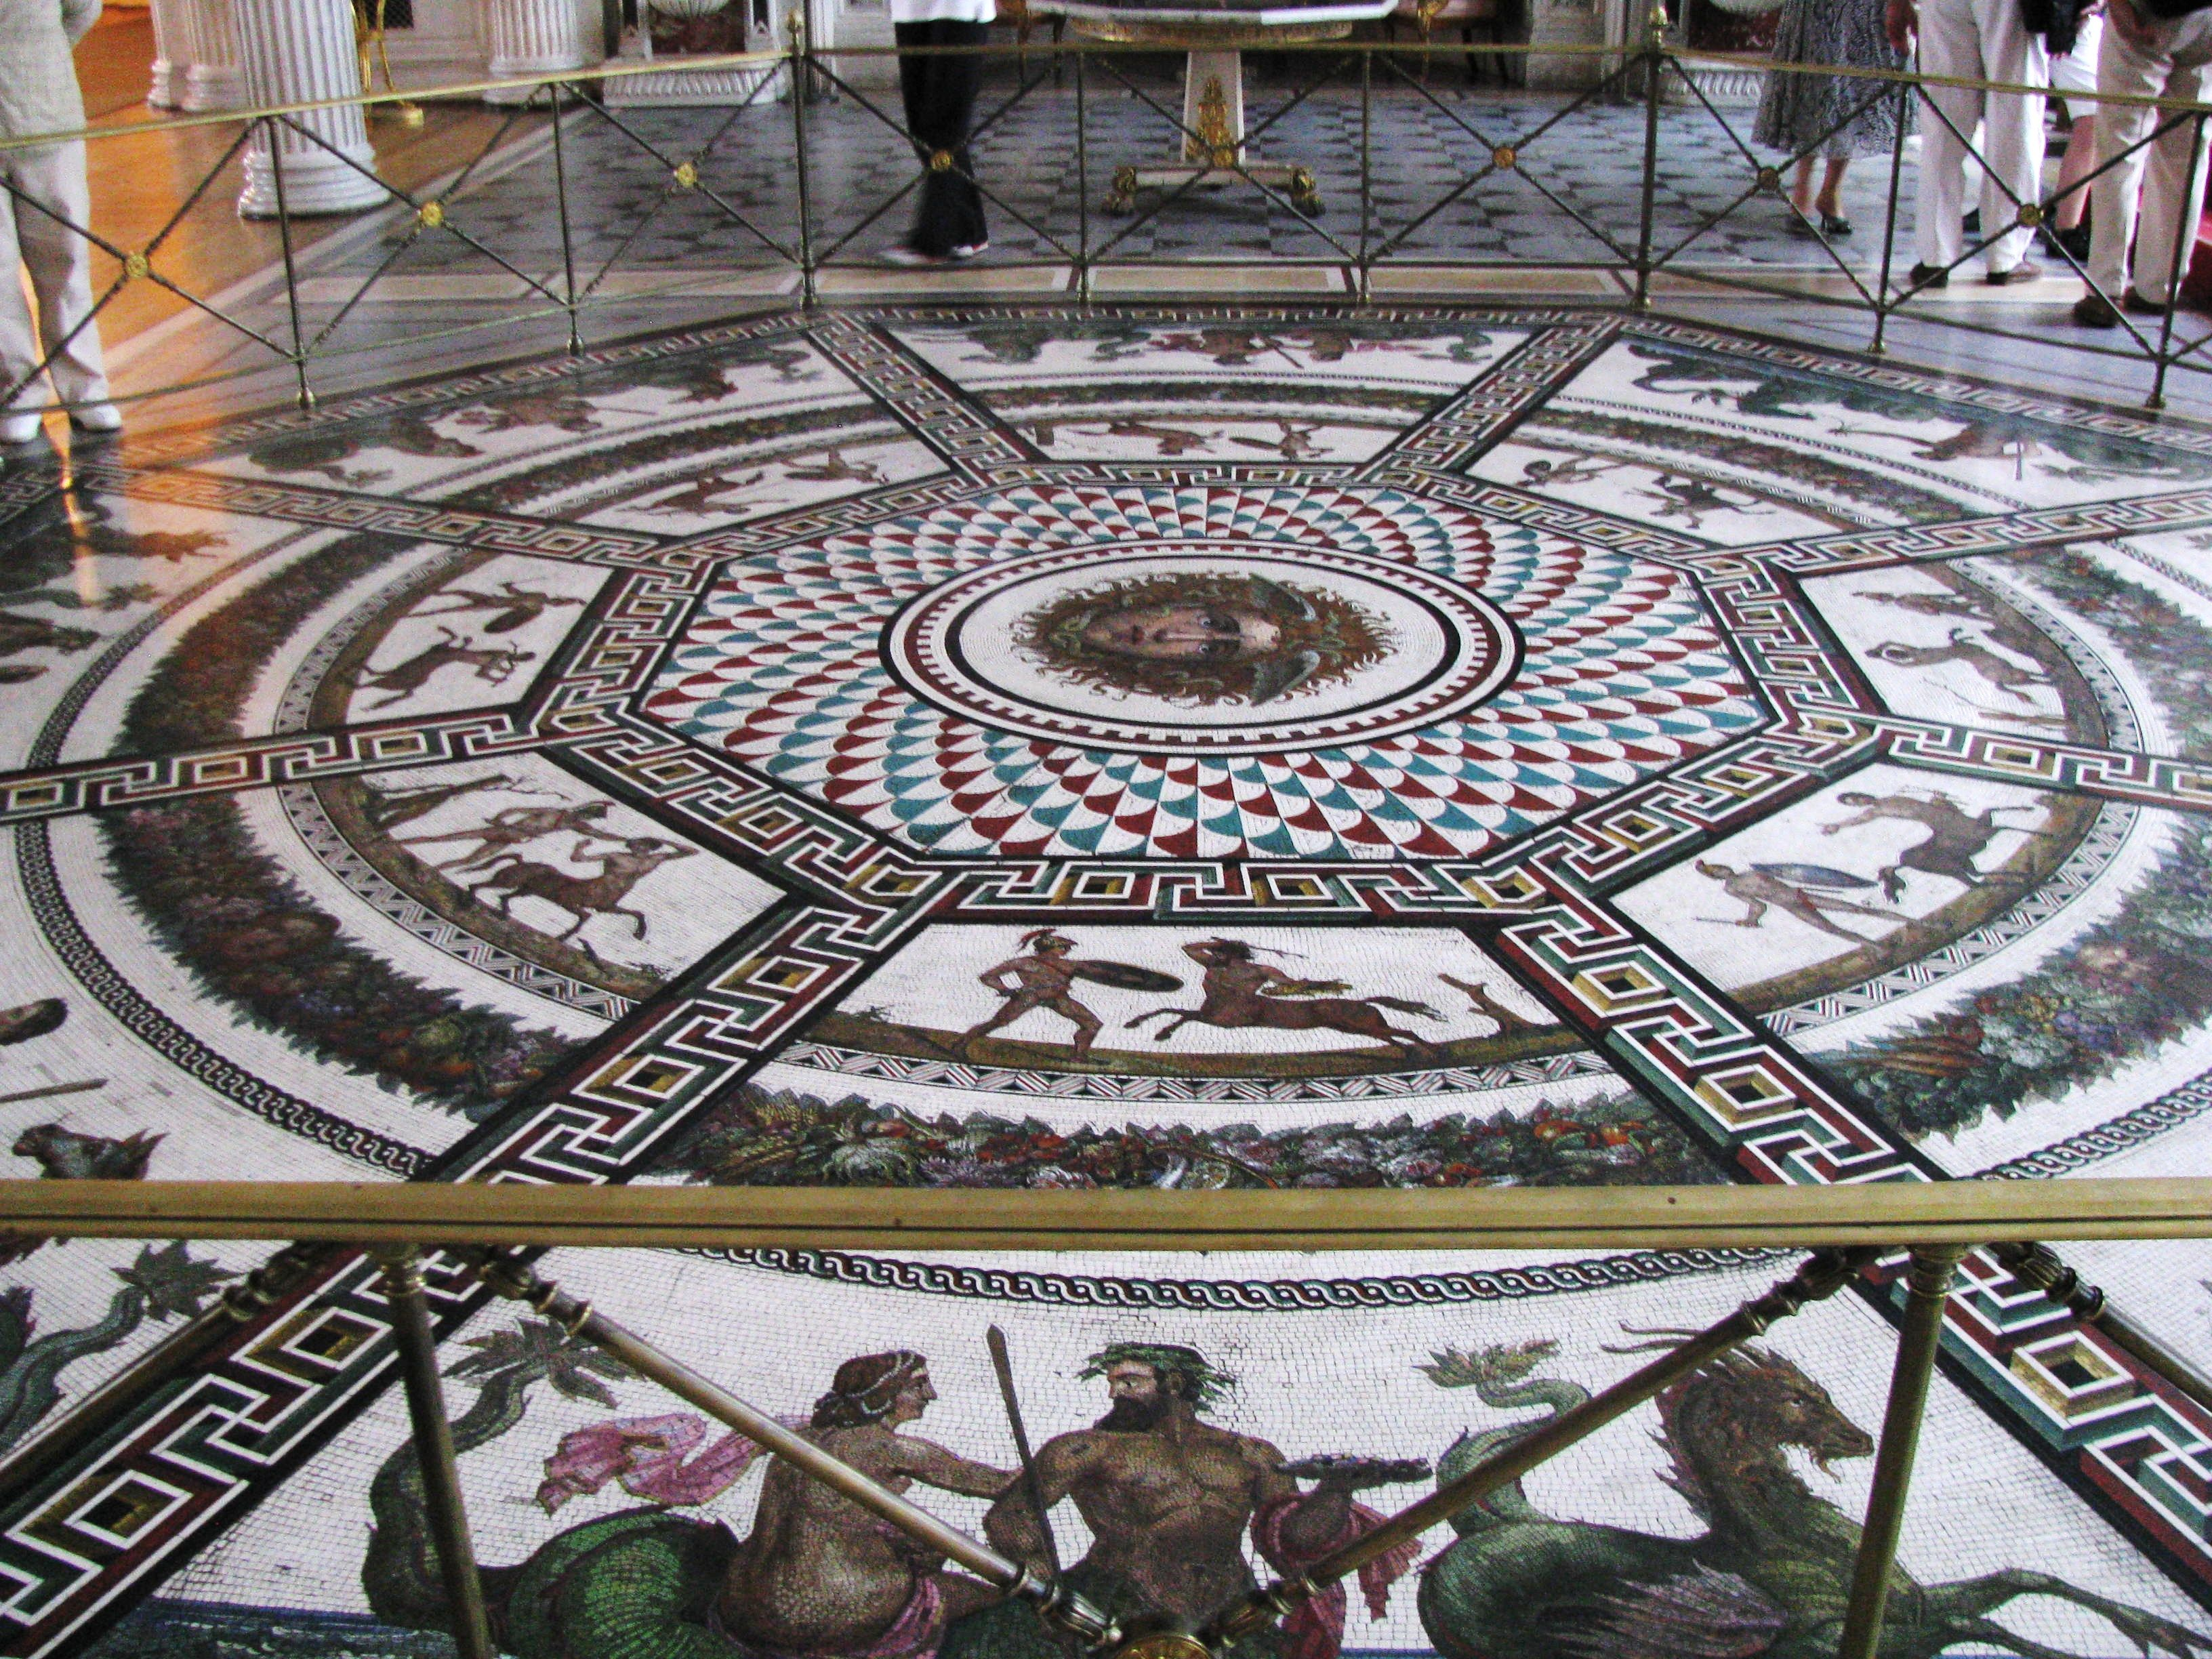 Gorgeous mosaic flooring. Love the attention to detail and storytelling.  Gives the space a